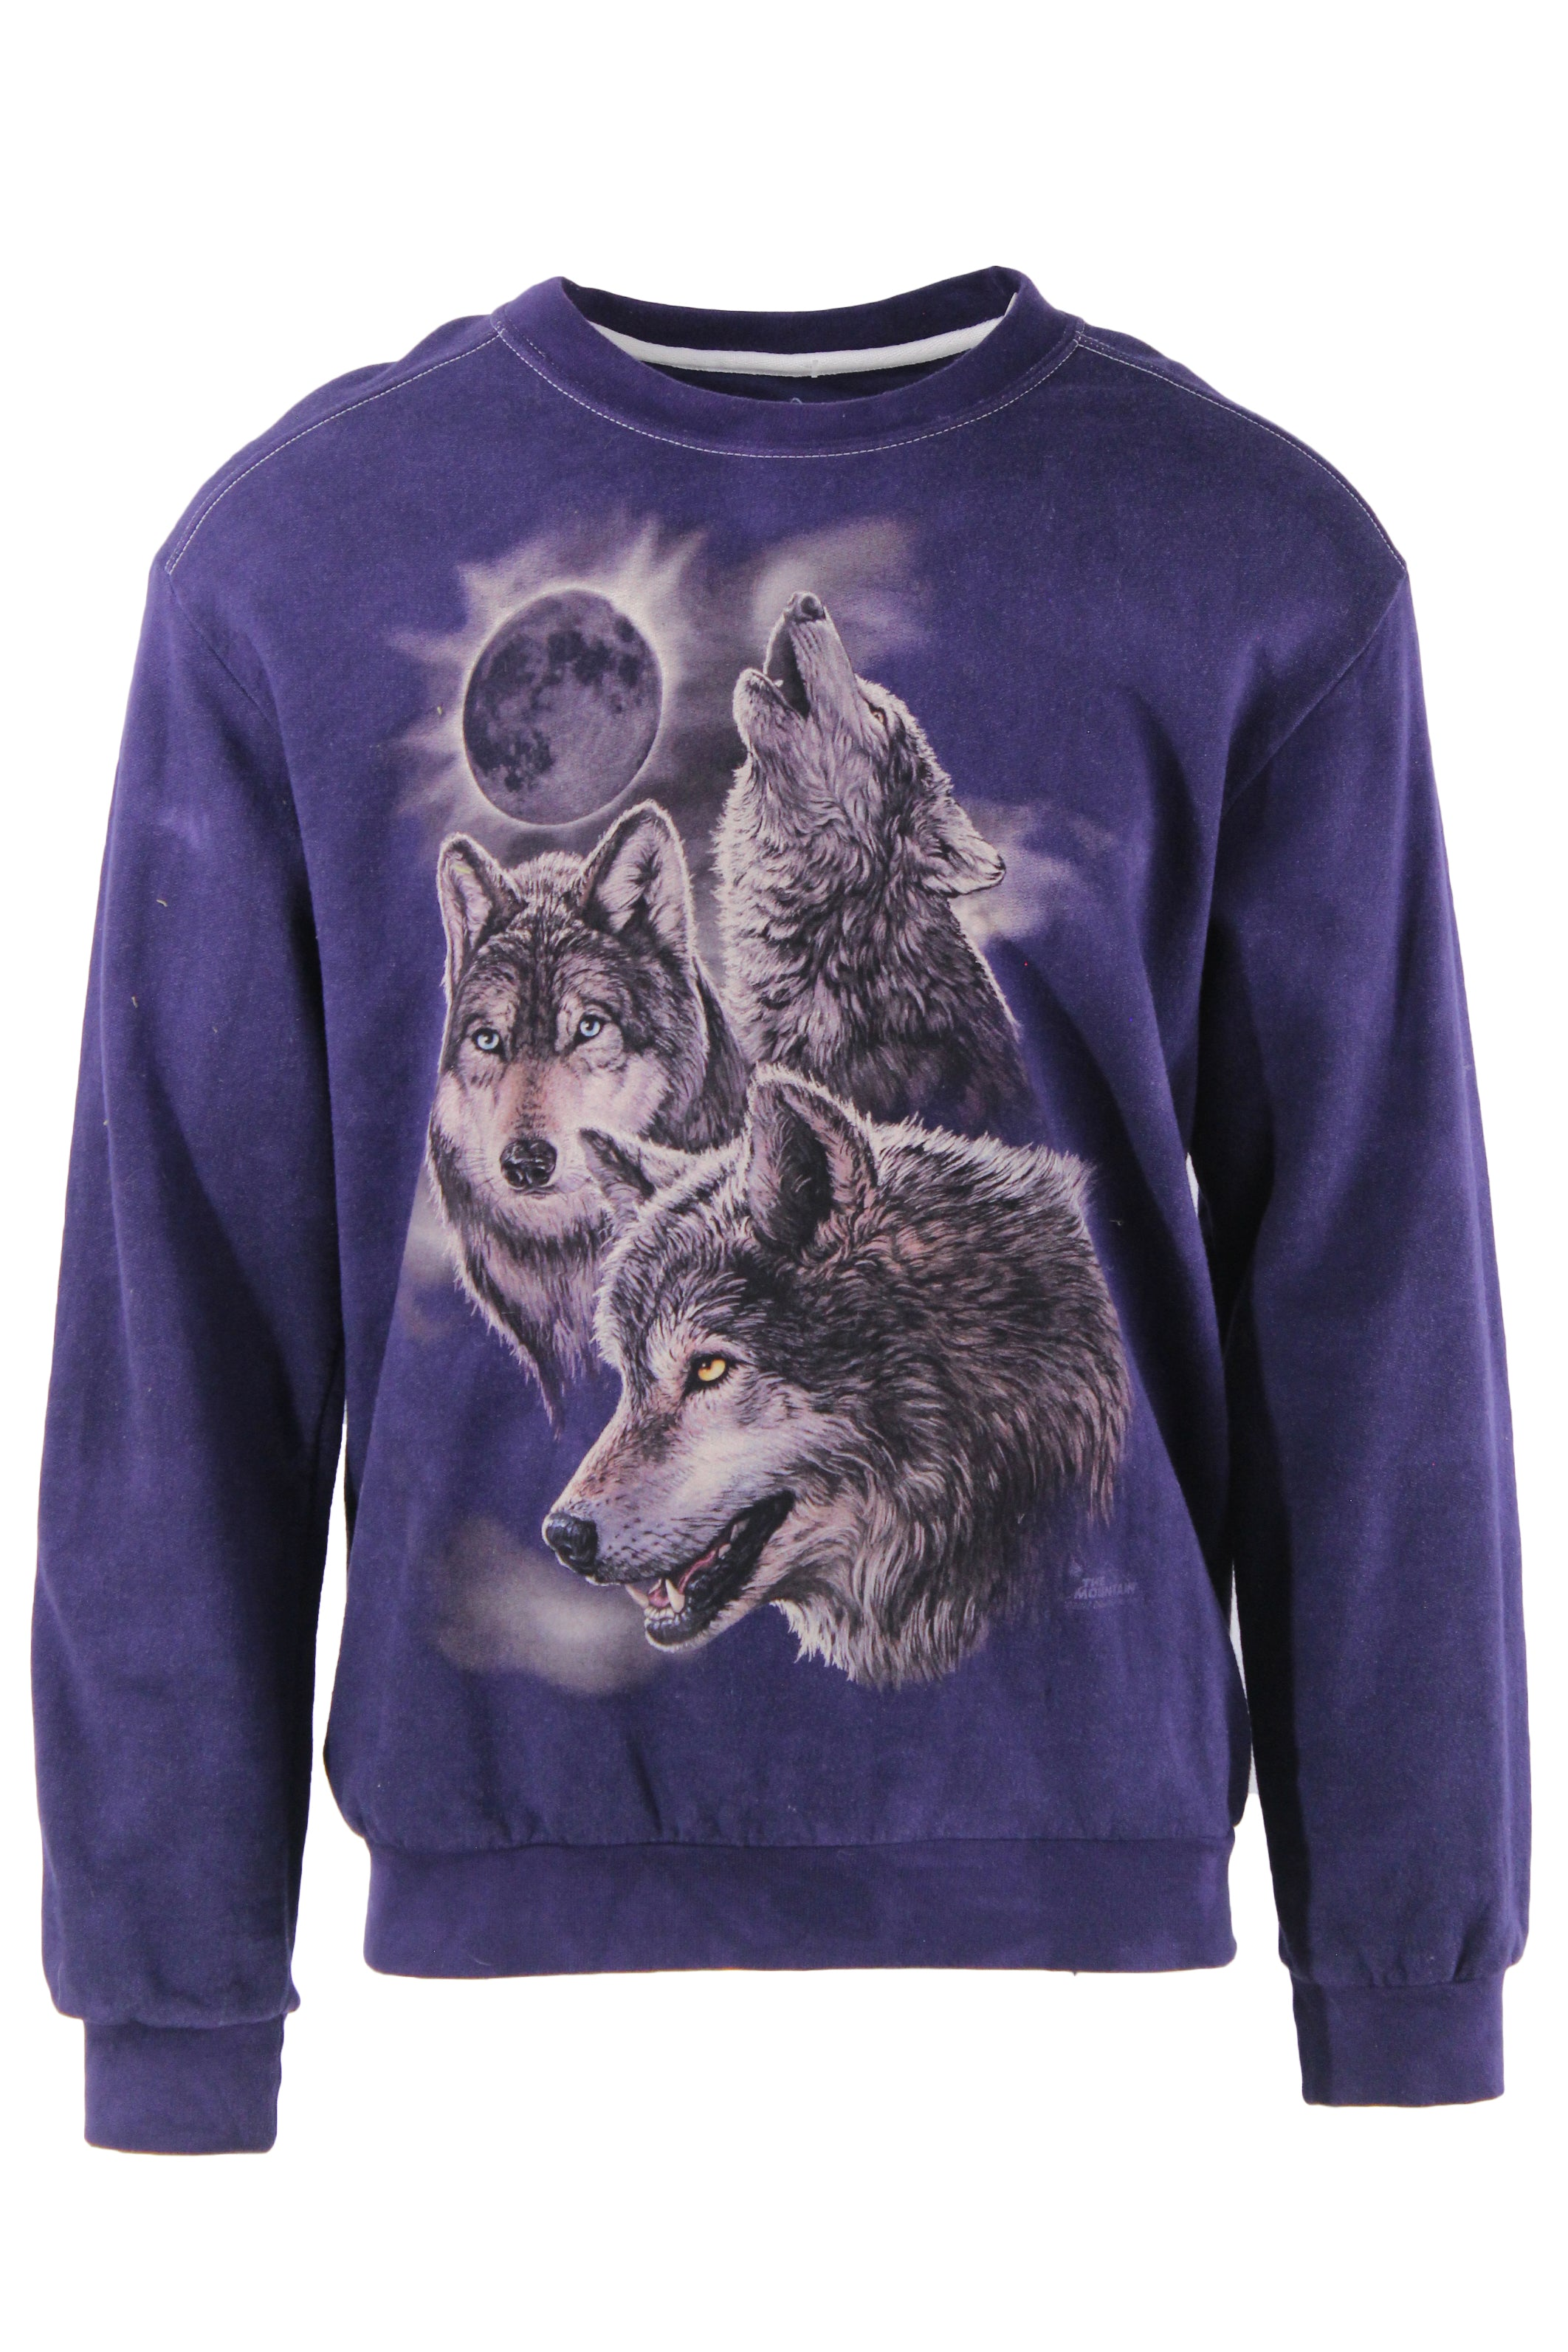 the mountain purple graphic long sleeve sweatshirt. features a round neckline, ribbed sleeve cuffs, & wolf graphic on front.